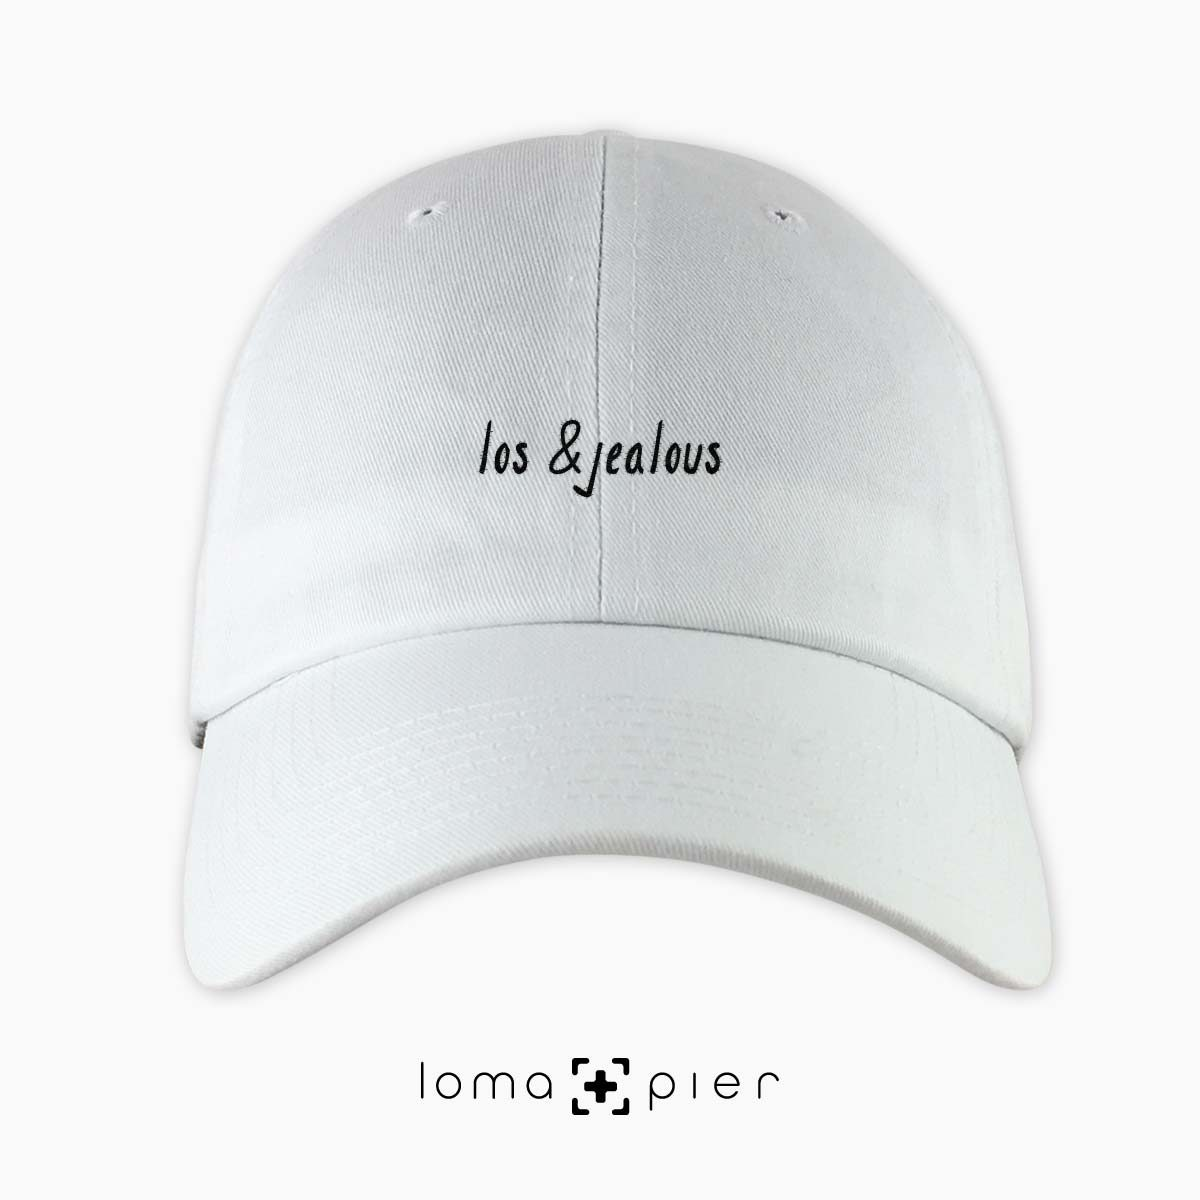 LOS &JEALOUS typography embroidered white dad hat black thread loma+pier hat store made in USA